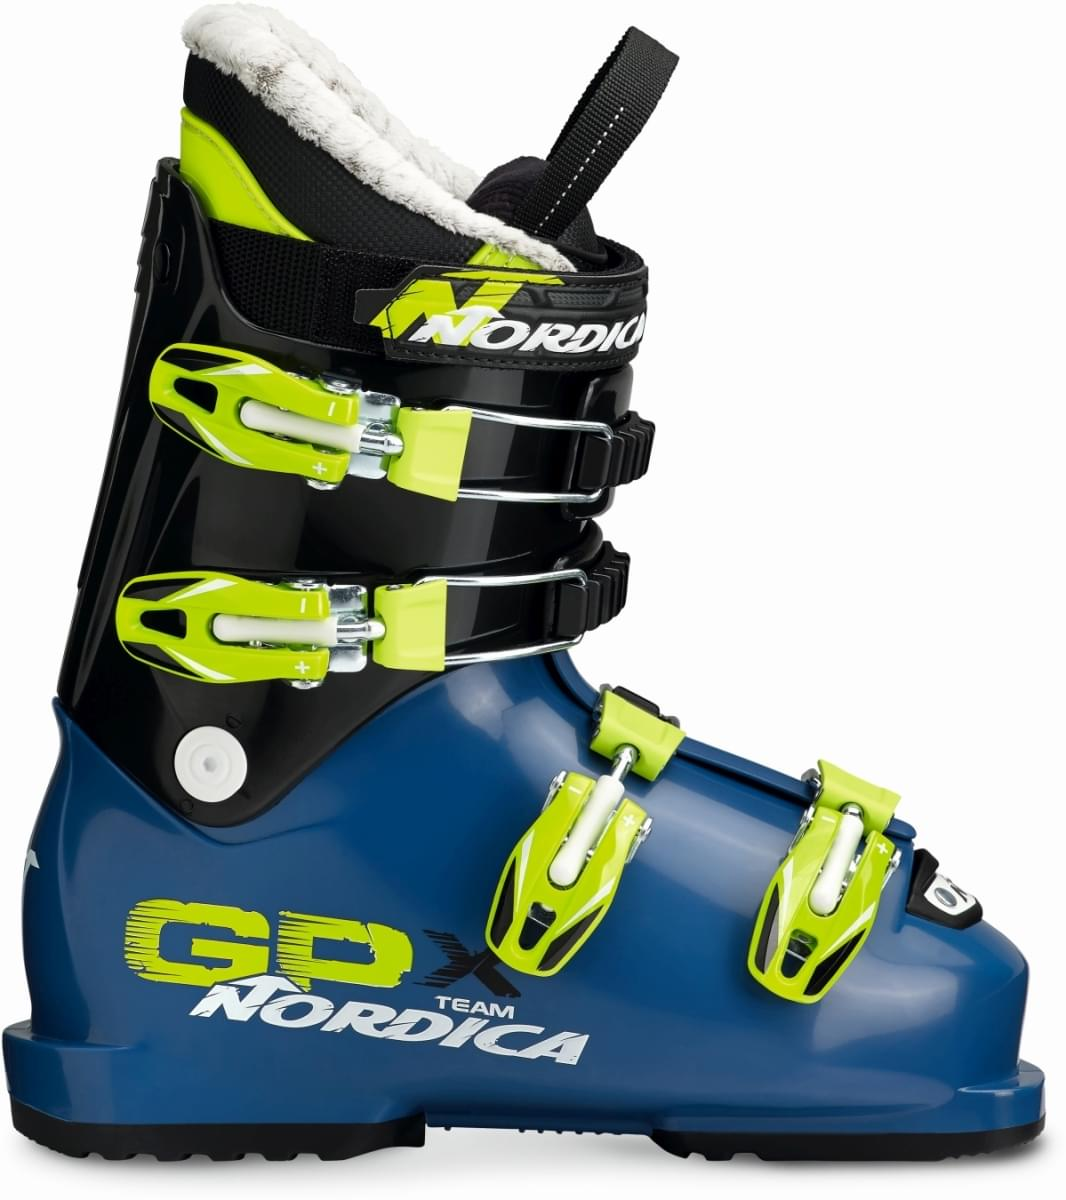 Nordica Gpx Team - blue/lime 260